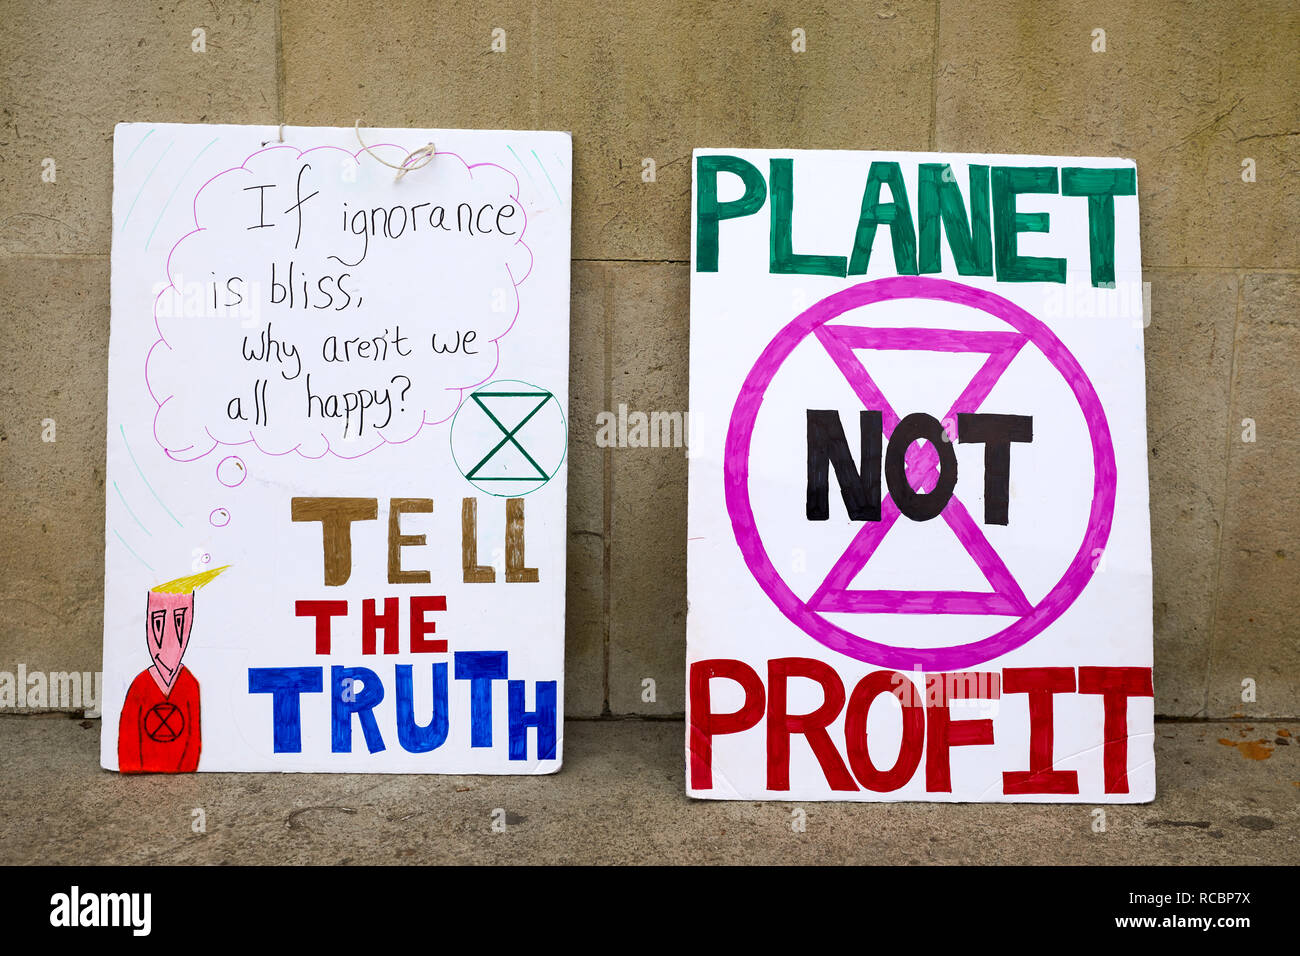 London, UK. - 15 Jan 2019: Placards from Earth Strike, a grassroots enviromental activisit movement, which demonstrated in Parliament for a General Stike day on 27 September. Credit: Kevin J. Frost/Alamy Live News Stock Photo